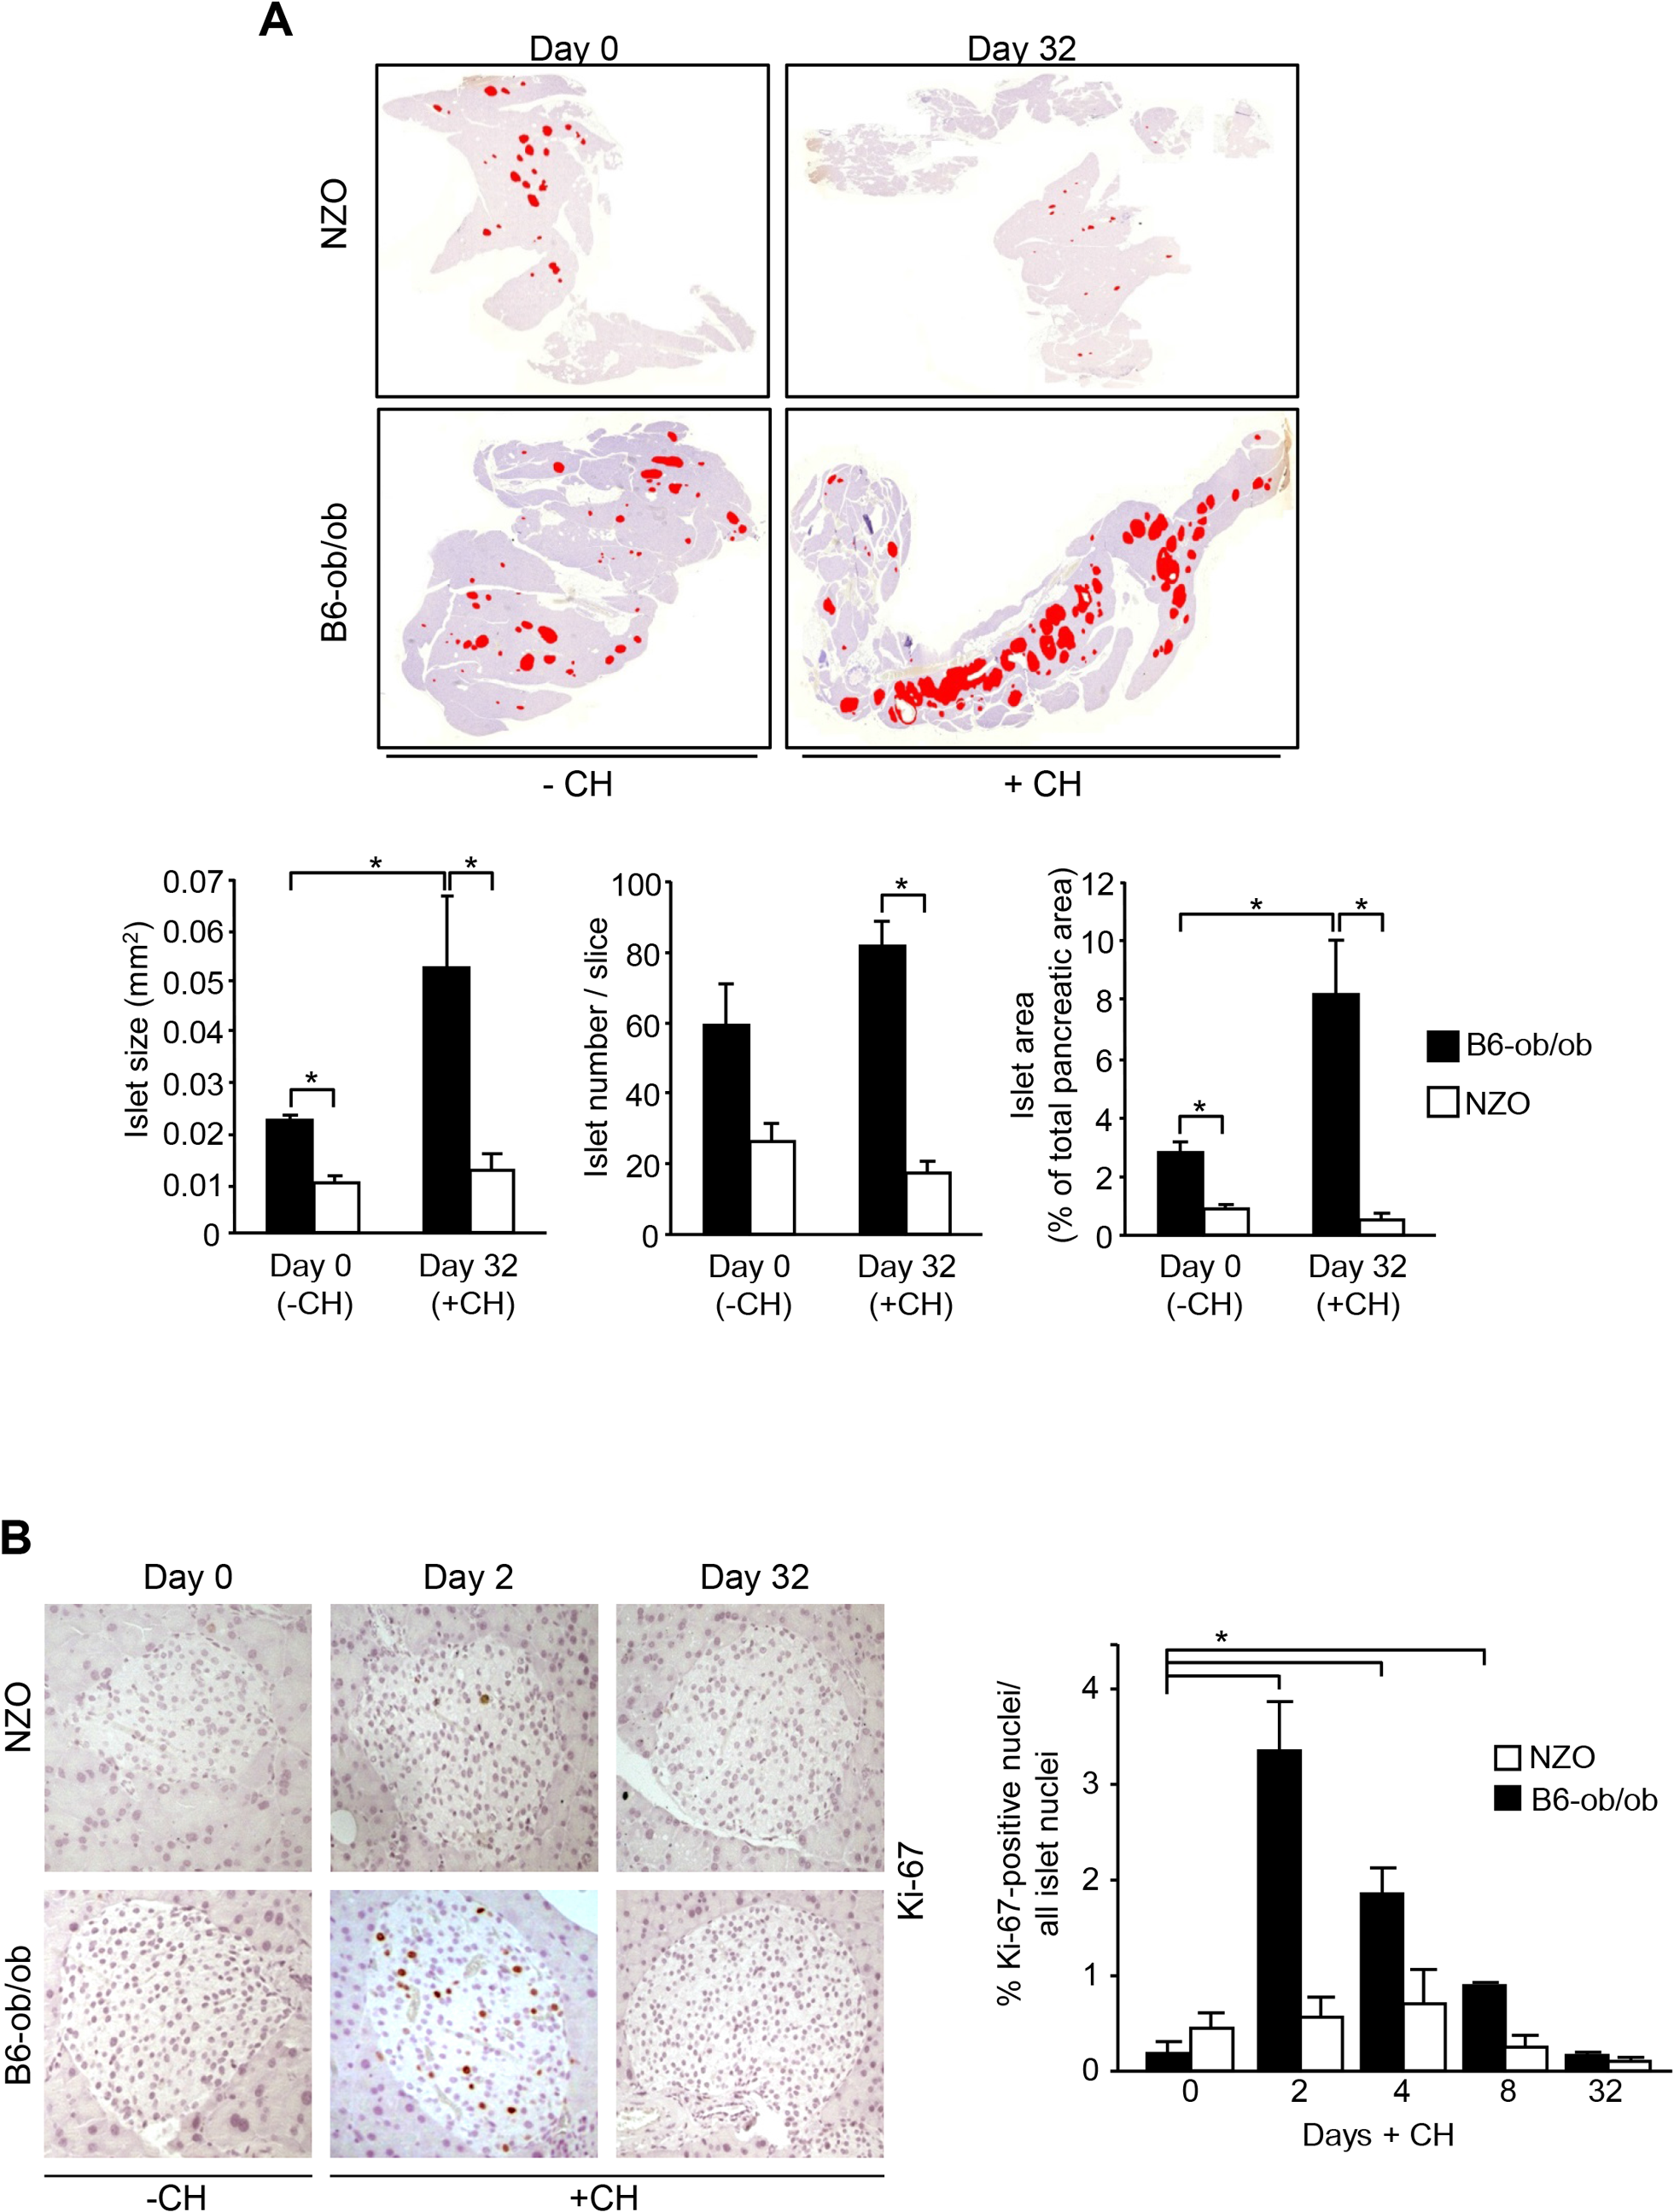 Diabetes resistance of B6-ob/ob mice is conferred by an adaptive islet hyperplasia.